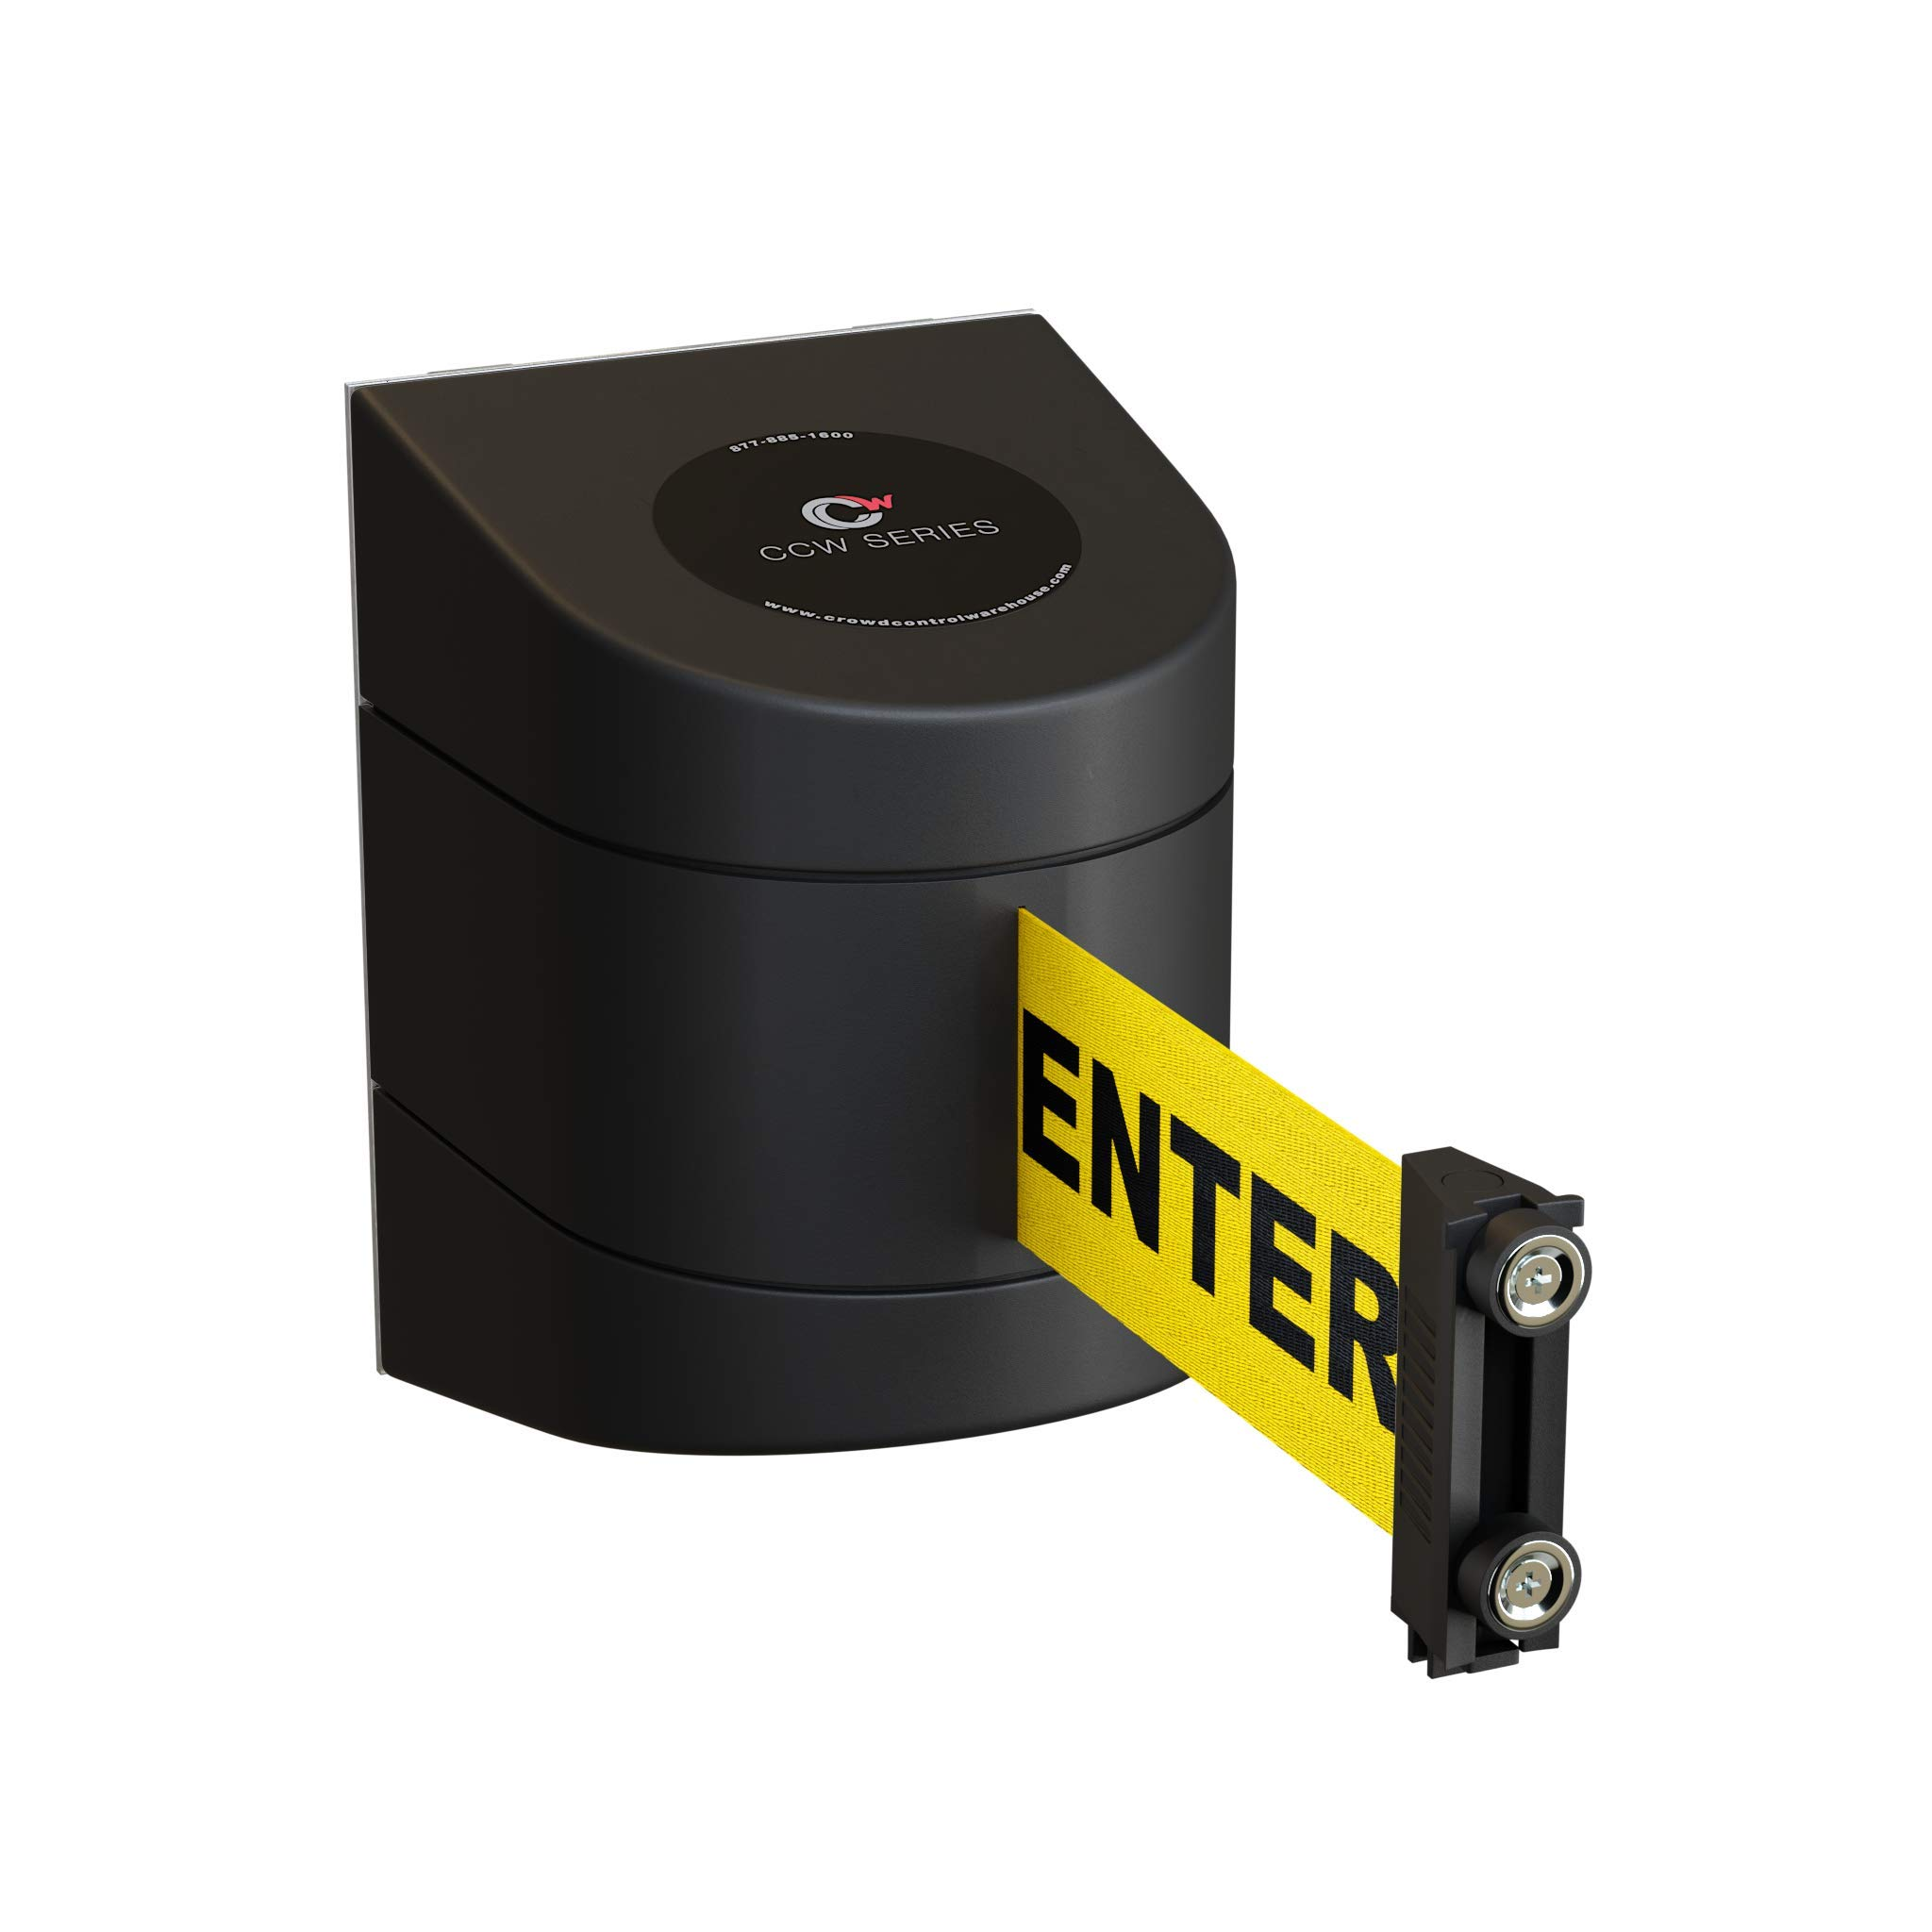 Magnetic Wall Mount Retractable Belt Barrier with ABS Case-CCW Series WMB-230 (30 Foot, Caution Do Not Enter Belt with Black ABS Case) by Crowd Control Warehouse